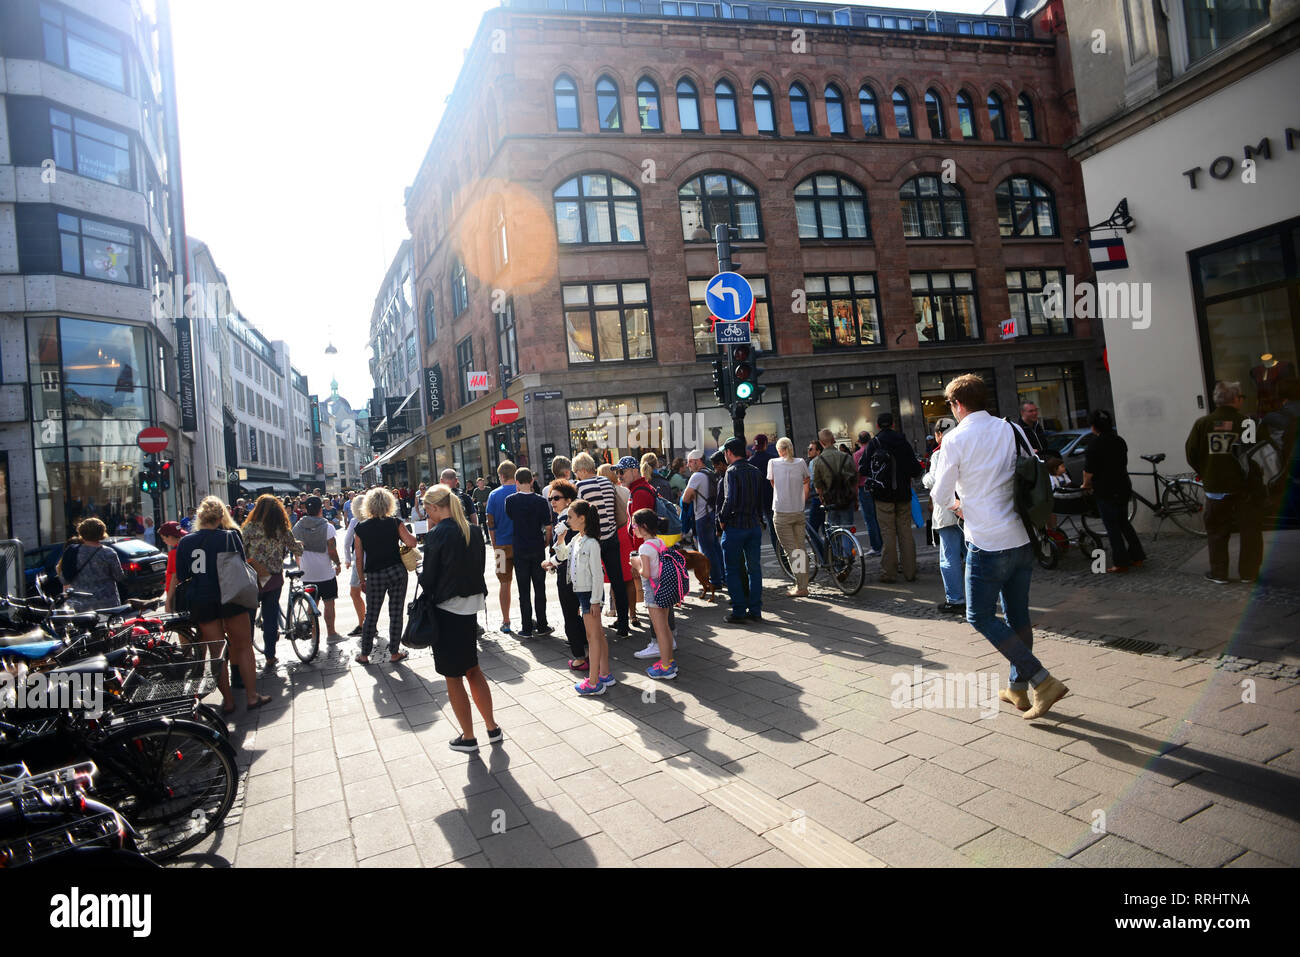 Strøget street, Copenhagen's aorta and one of Europe's longest pedestrian streets with a wealth of shops. - Stock Image